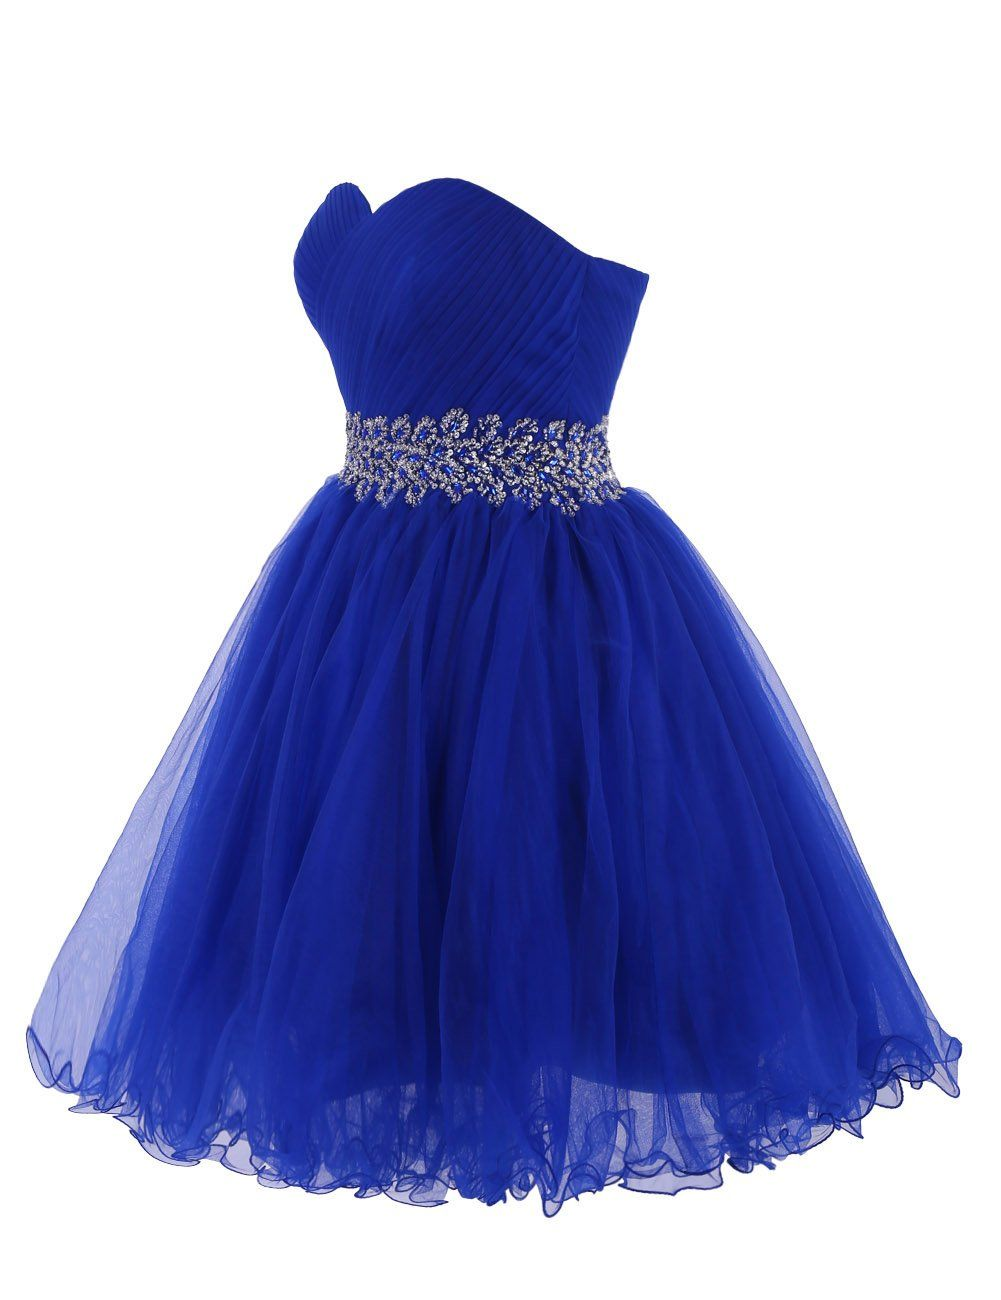 3872c4aa7be Tidetell 2015 Strapless Royal Blue Homecoming Beaded Short Prom Dresses  Ball Gowns